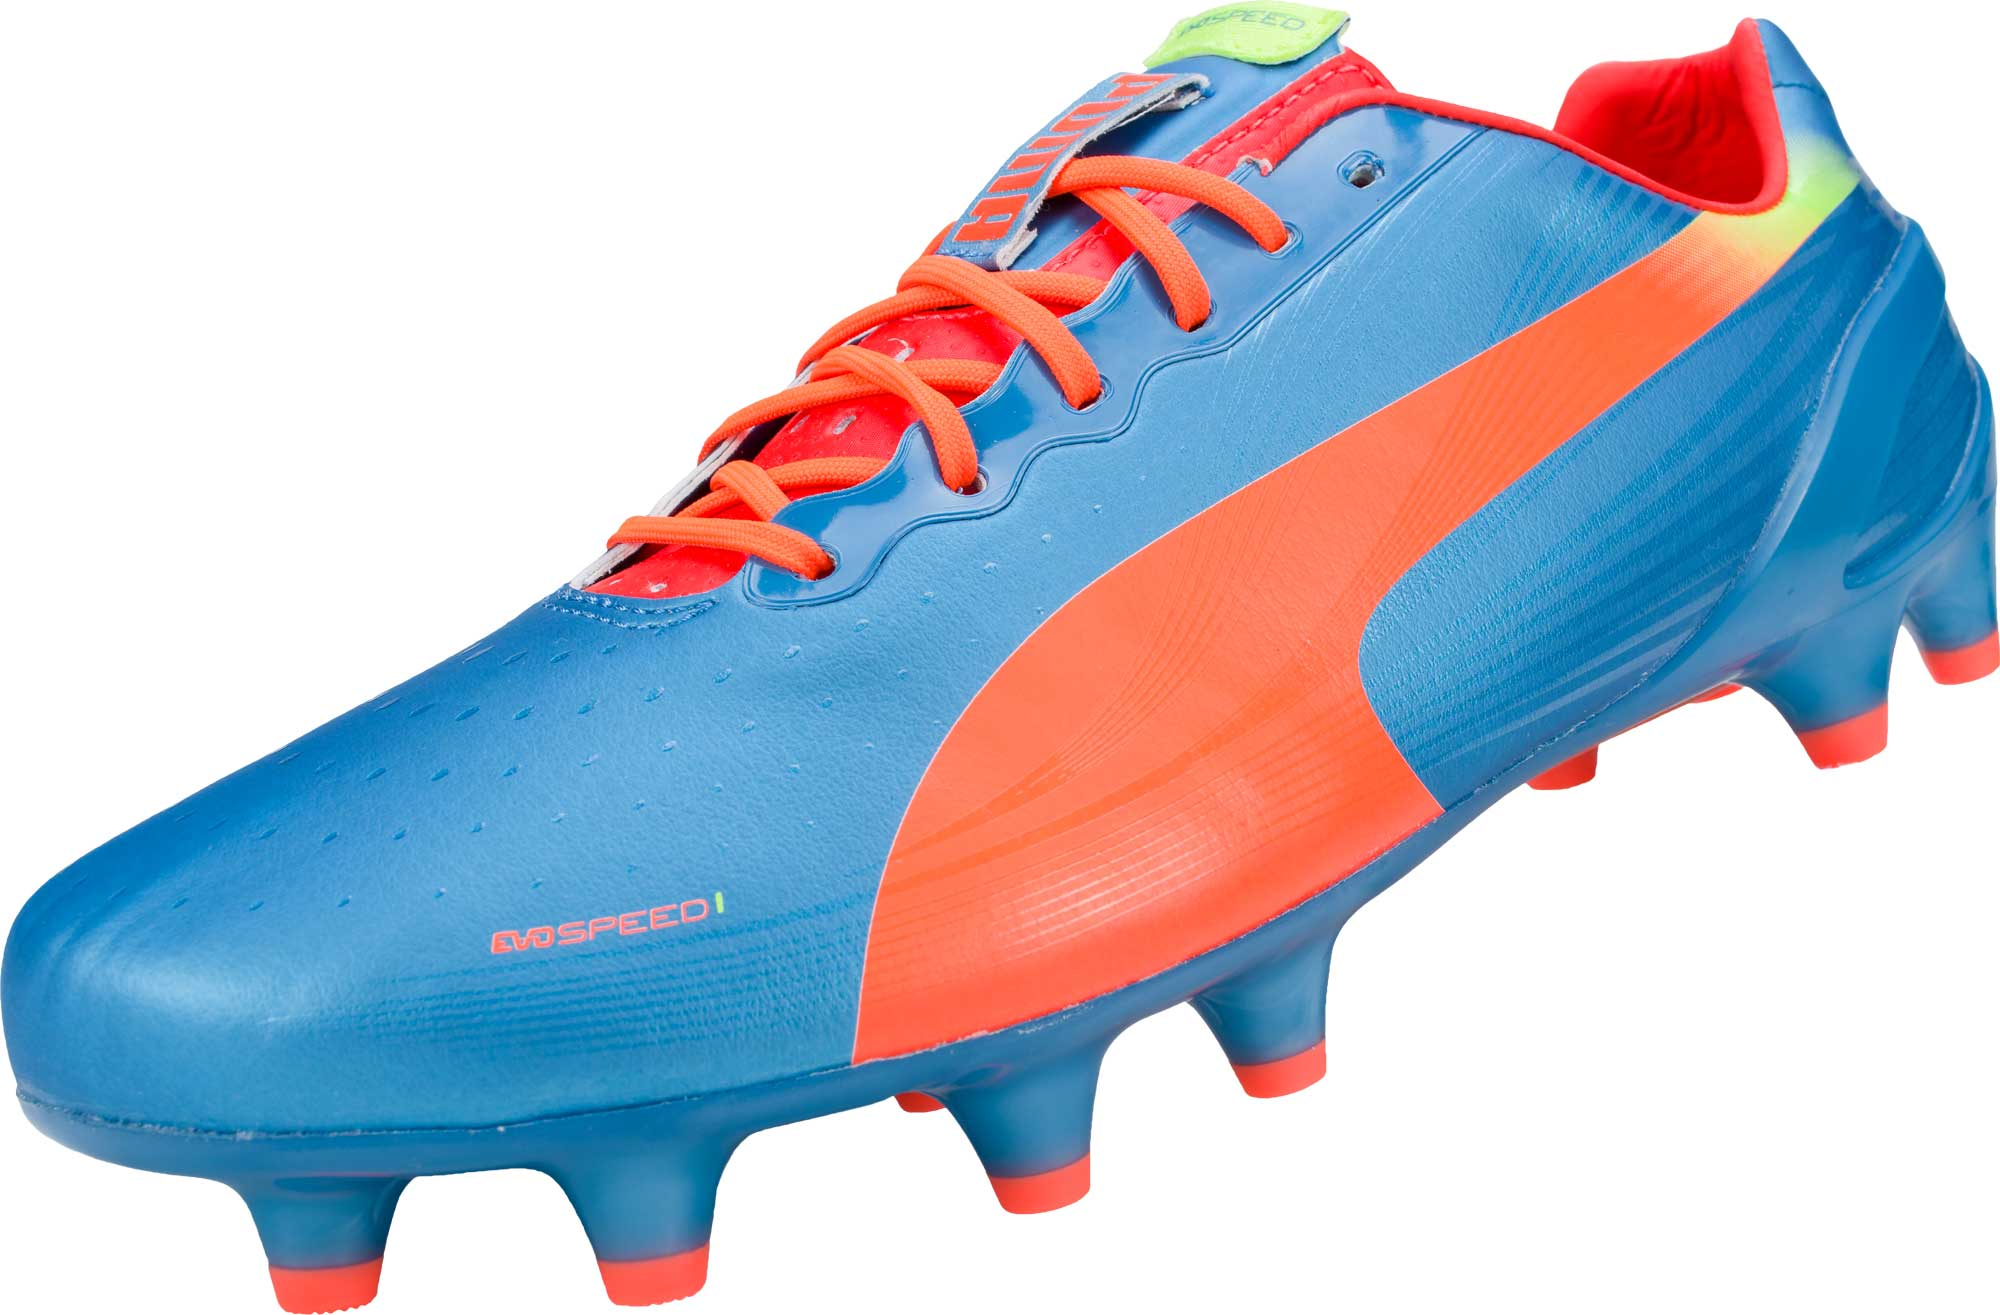 PUMA evoSPEED 1.2 FG Soccer Cleats Sharks Blue Fluro Peach 27fddd70a